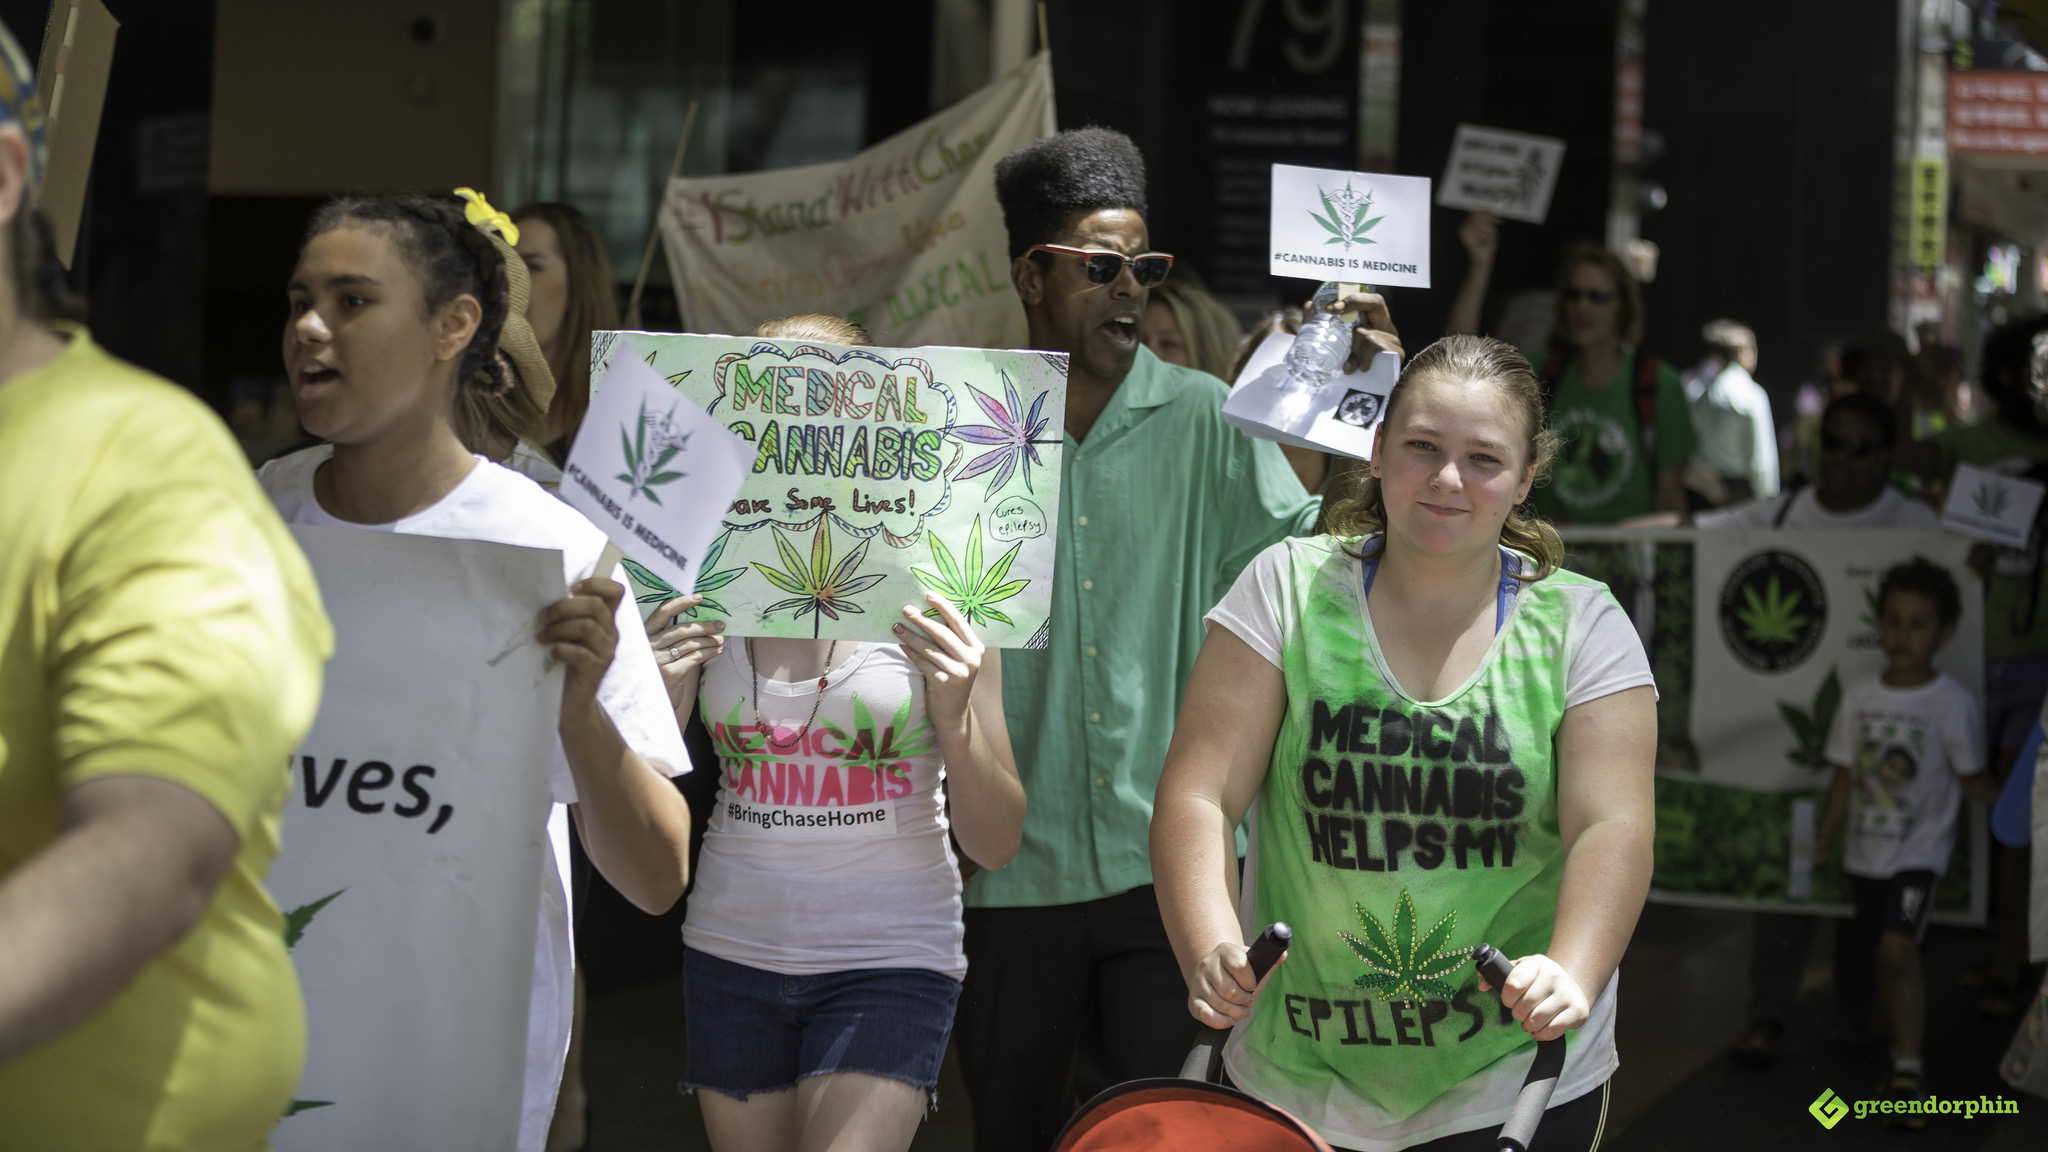 Medical Cannabis Law Reform March - Brisbane, Australia